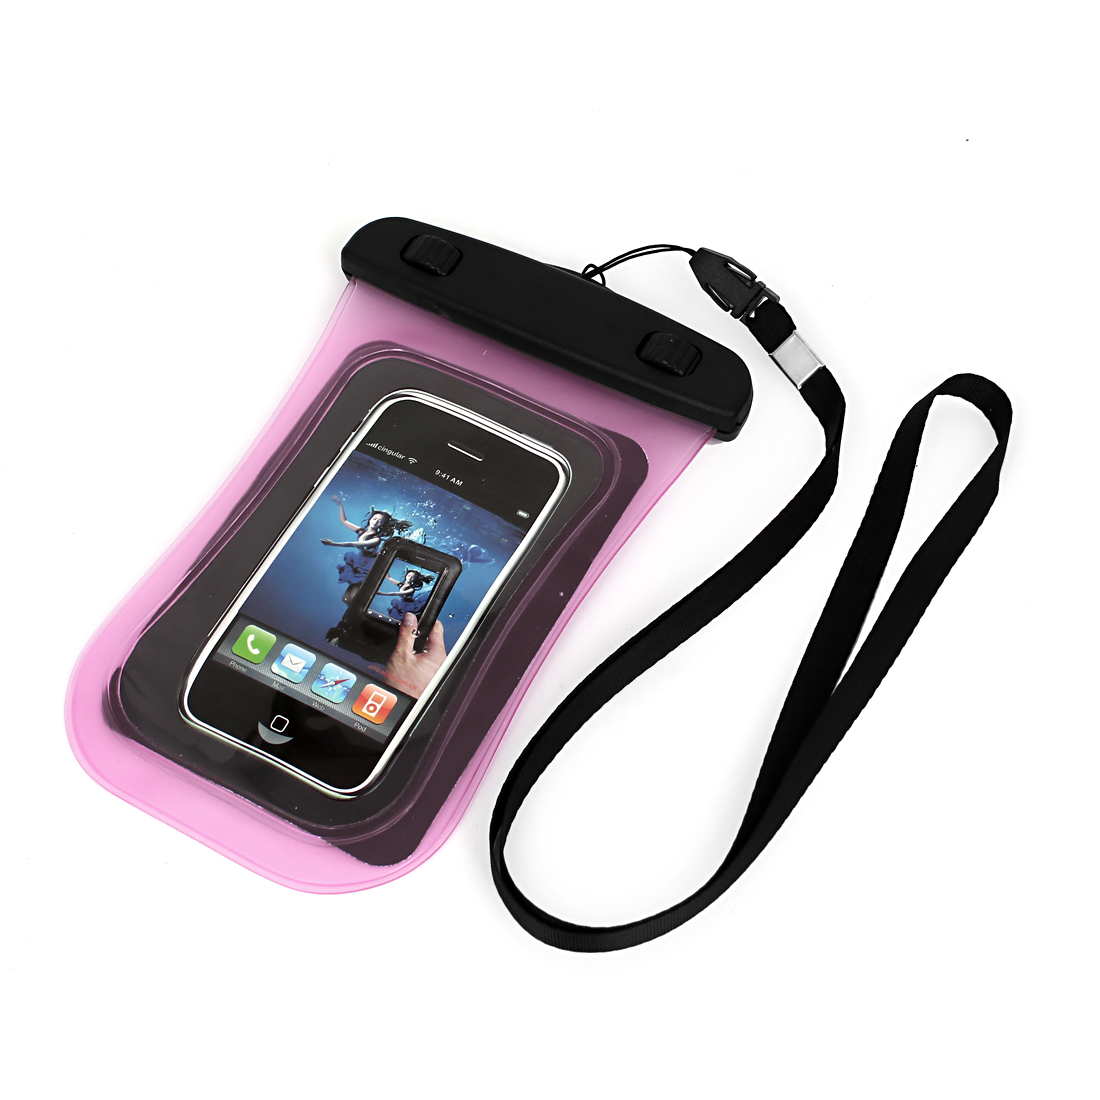 "Universal Waterproof Case Dry Bag Protective Cover Pouch Pink for 4"" Cell Phone"